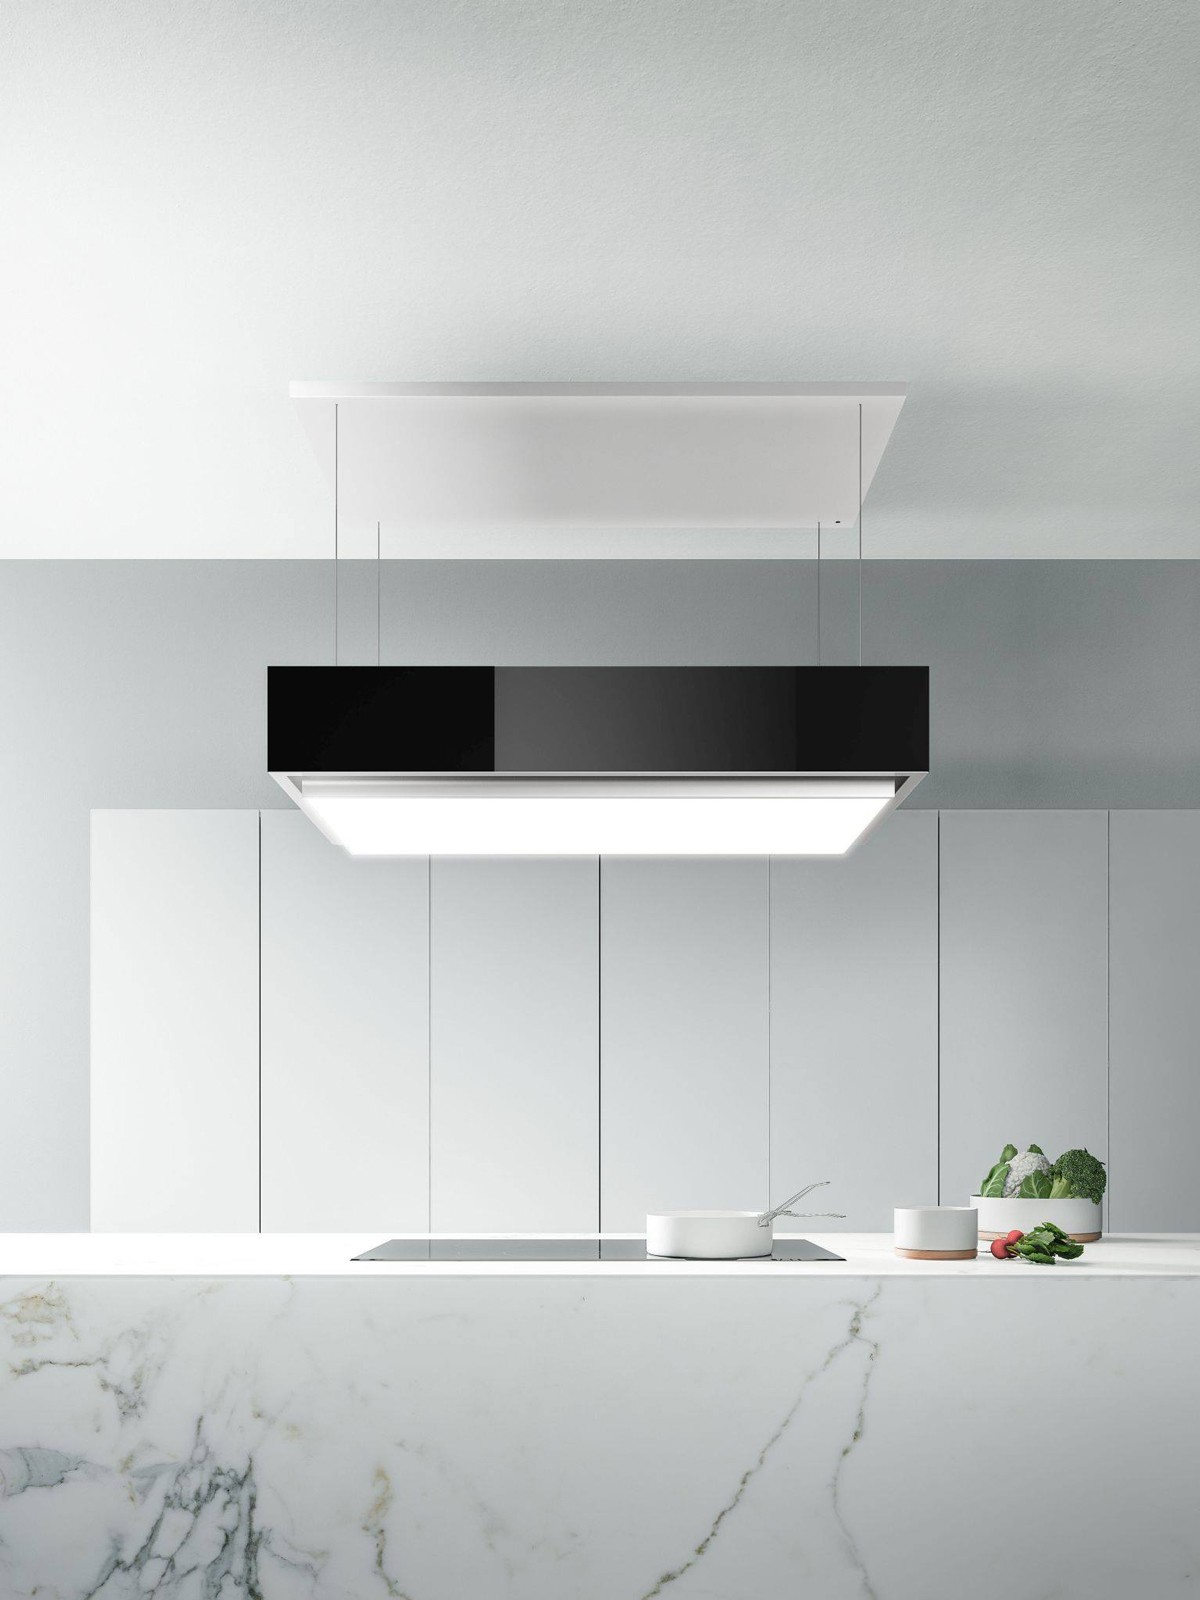 Zelari_Kitchen-Hoods_Kitchen-Design_cocinas-de-lujo-Madrid_arquitectura-de-cocina